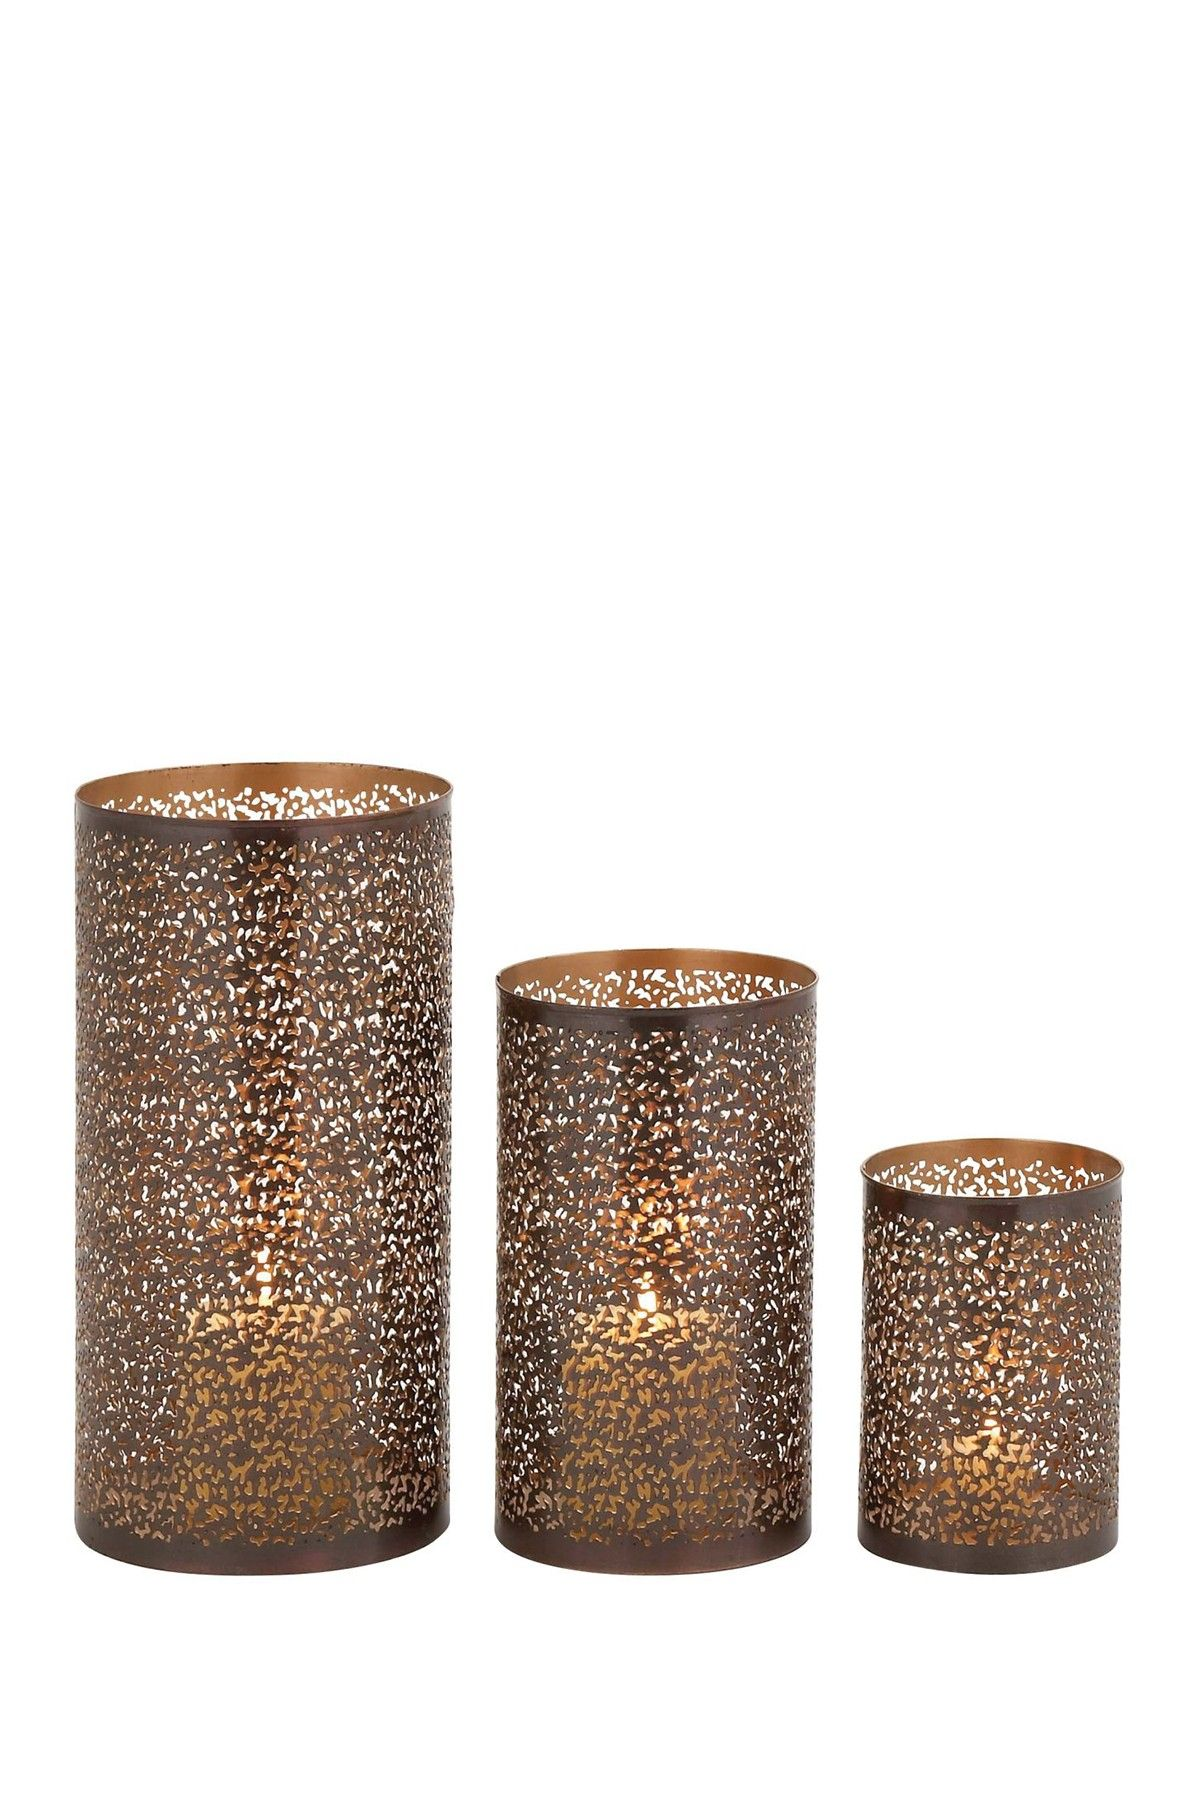 Metal Hurricanes - Set of 3 |   Sponsored by Nordstrom Rack. ==